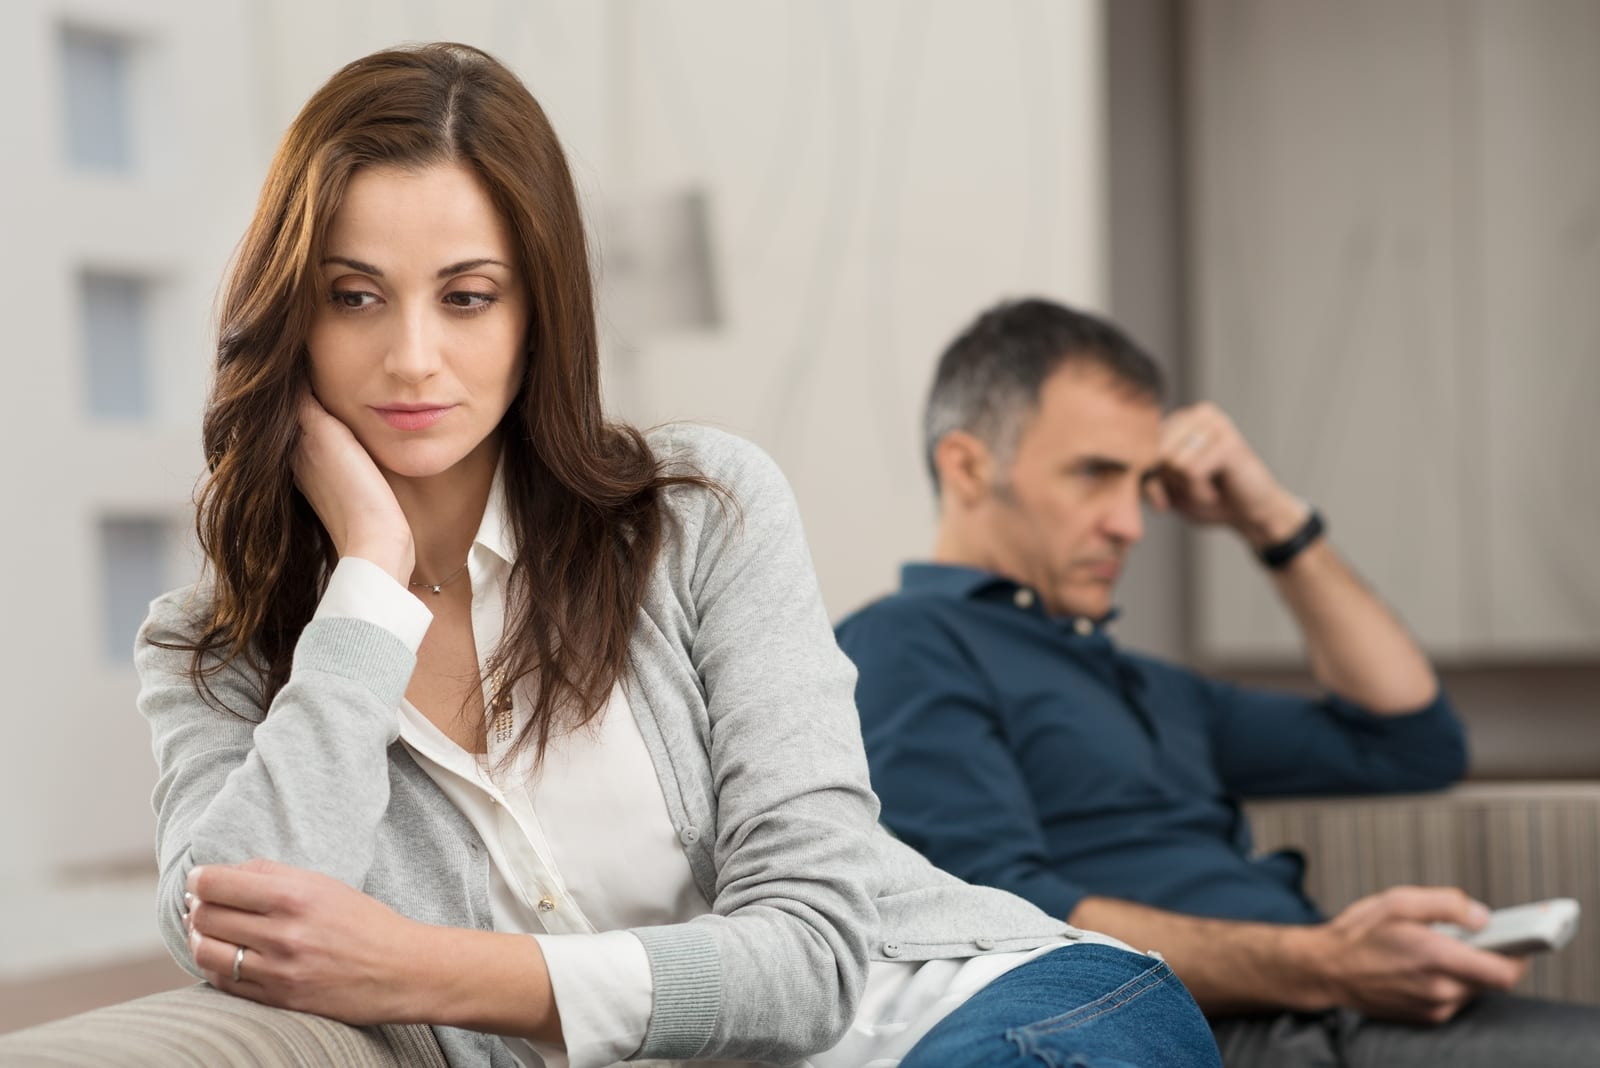 sad woman leaning on sofa while sitting near man